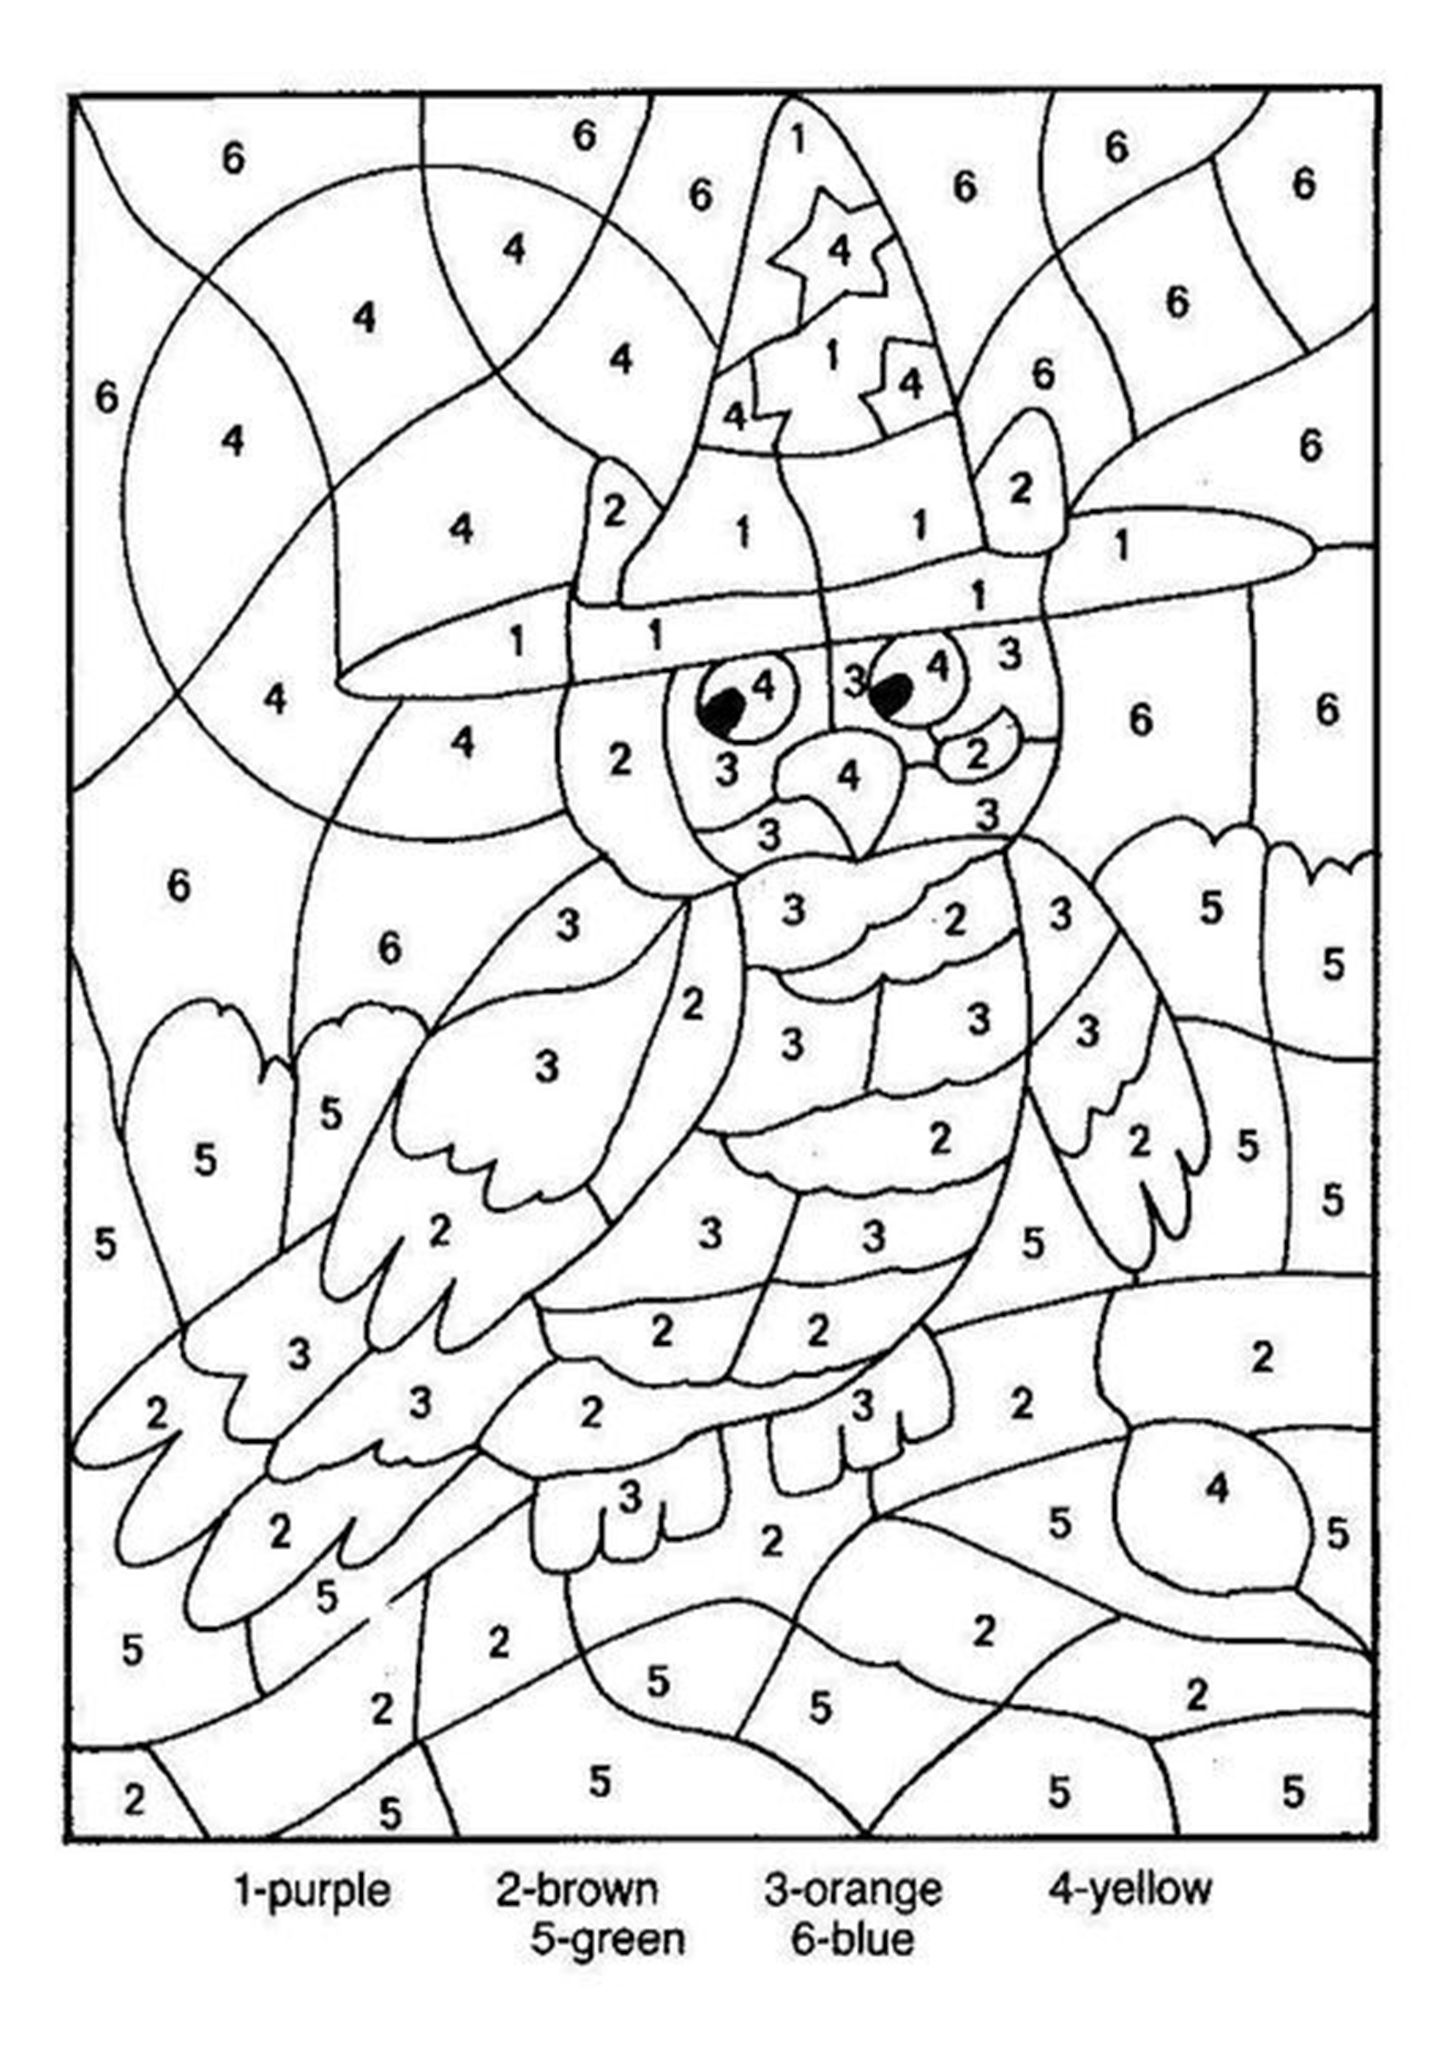 Free Printable Color By Number Worksheets For Kindergarten Owl Coloring Pages Halloween Coloring Halloween Coloring Pages